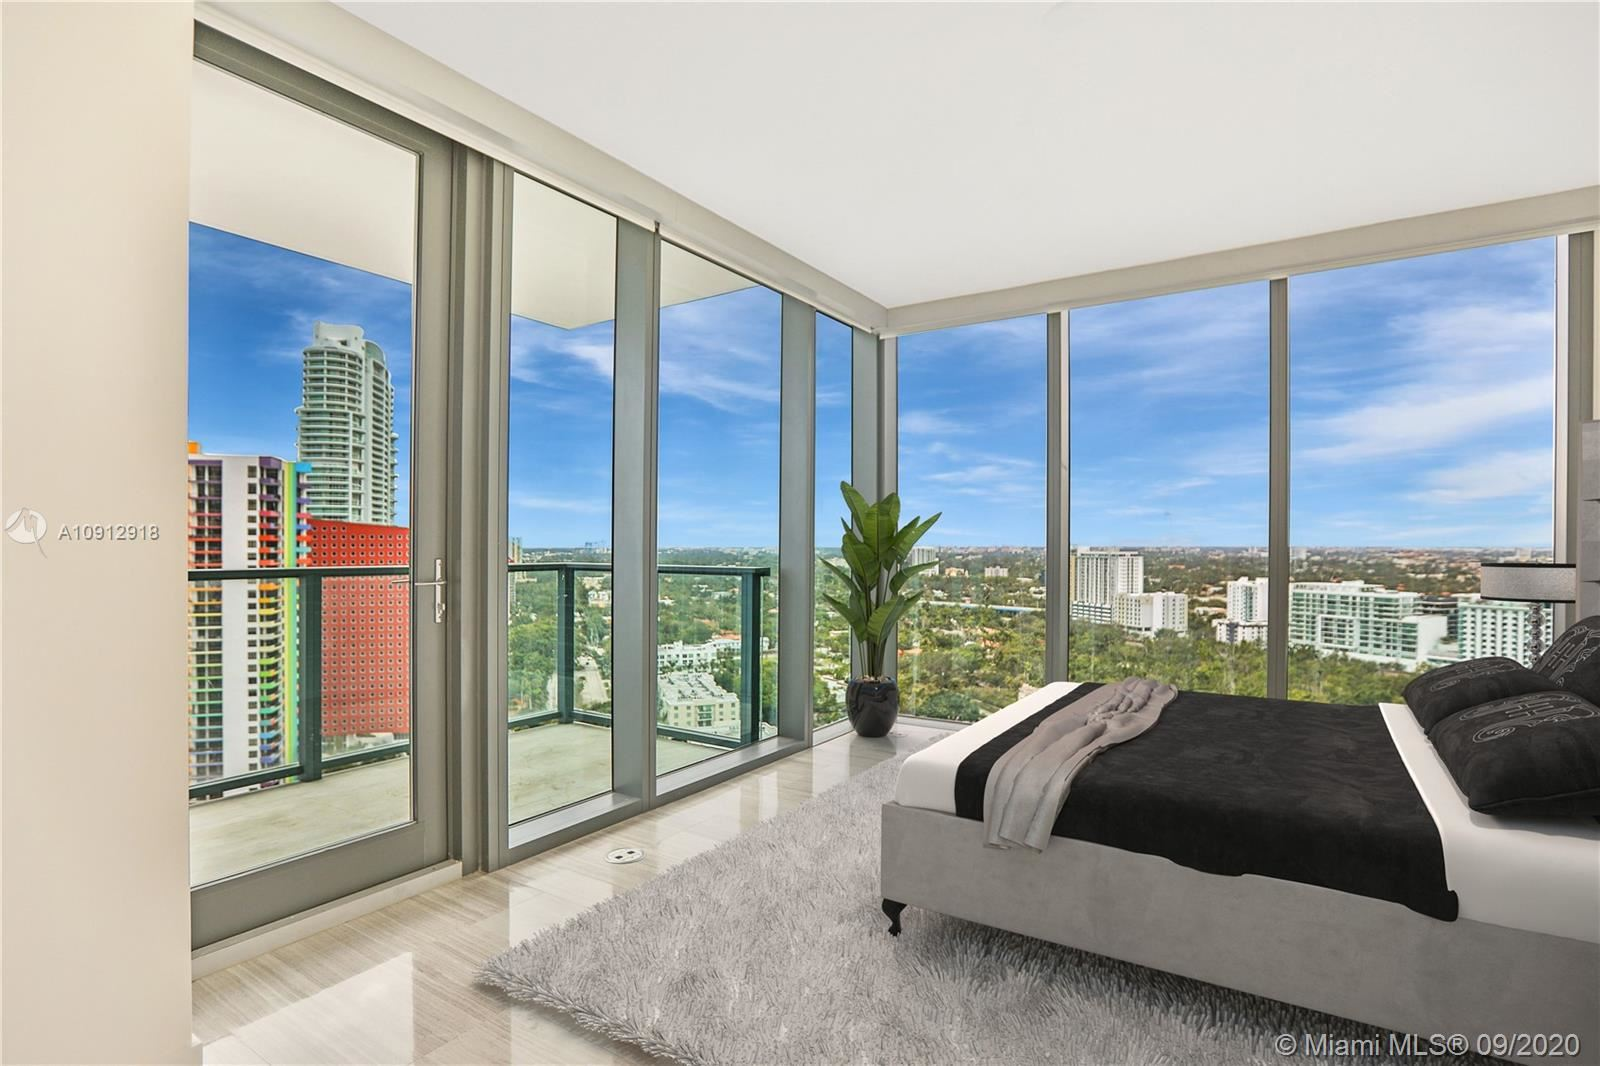 1451 Brickell Ave #2303, Miami, FL 33131 - #: A10912918